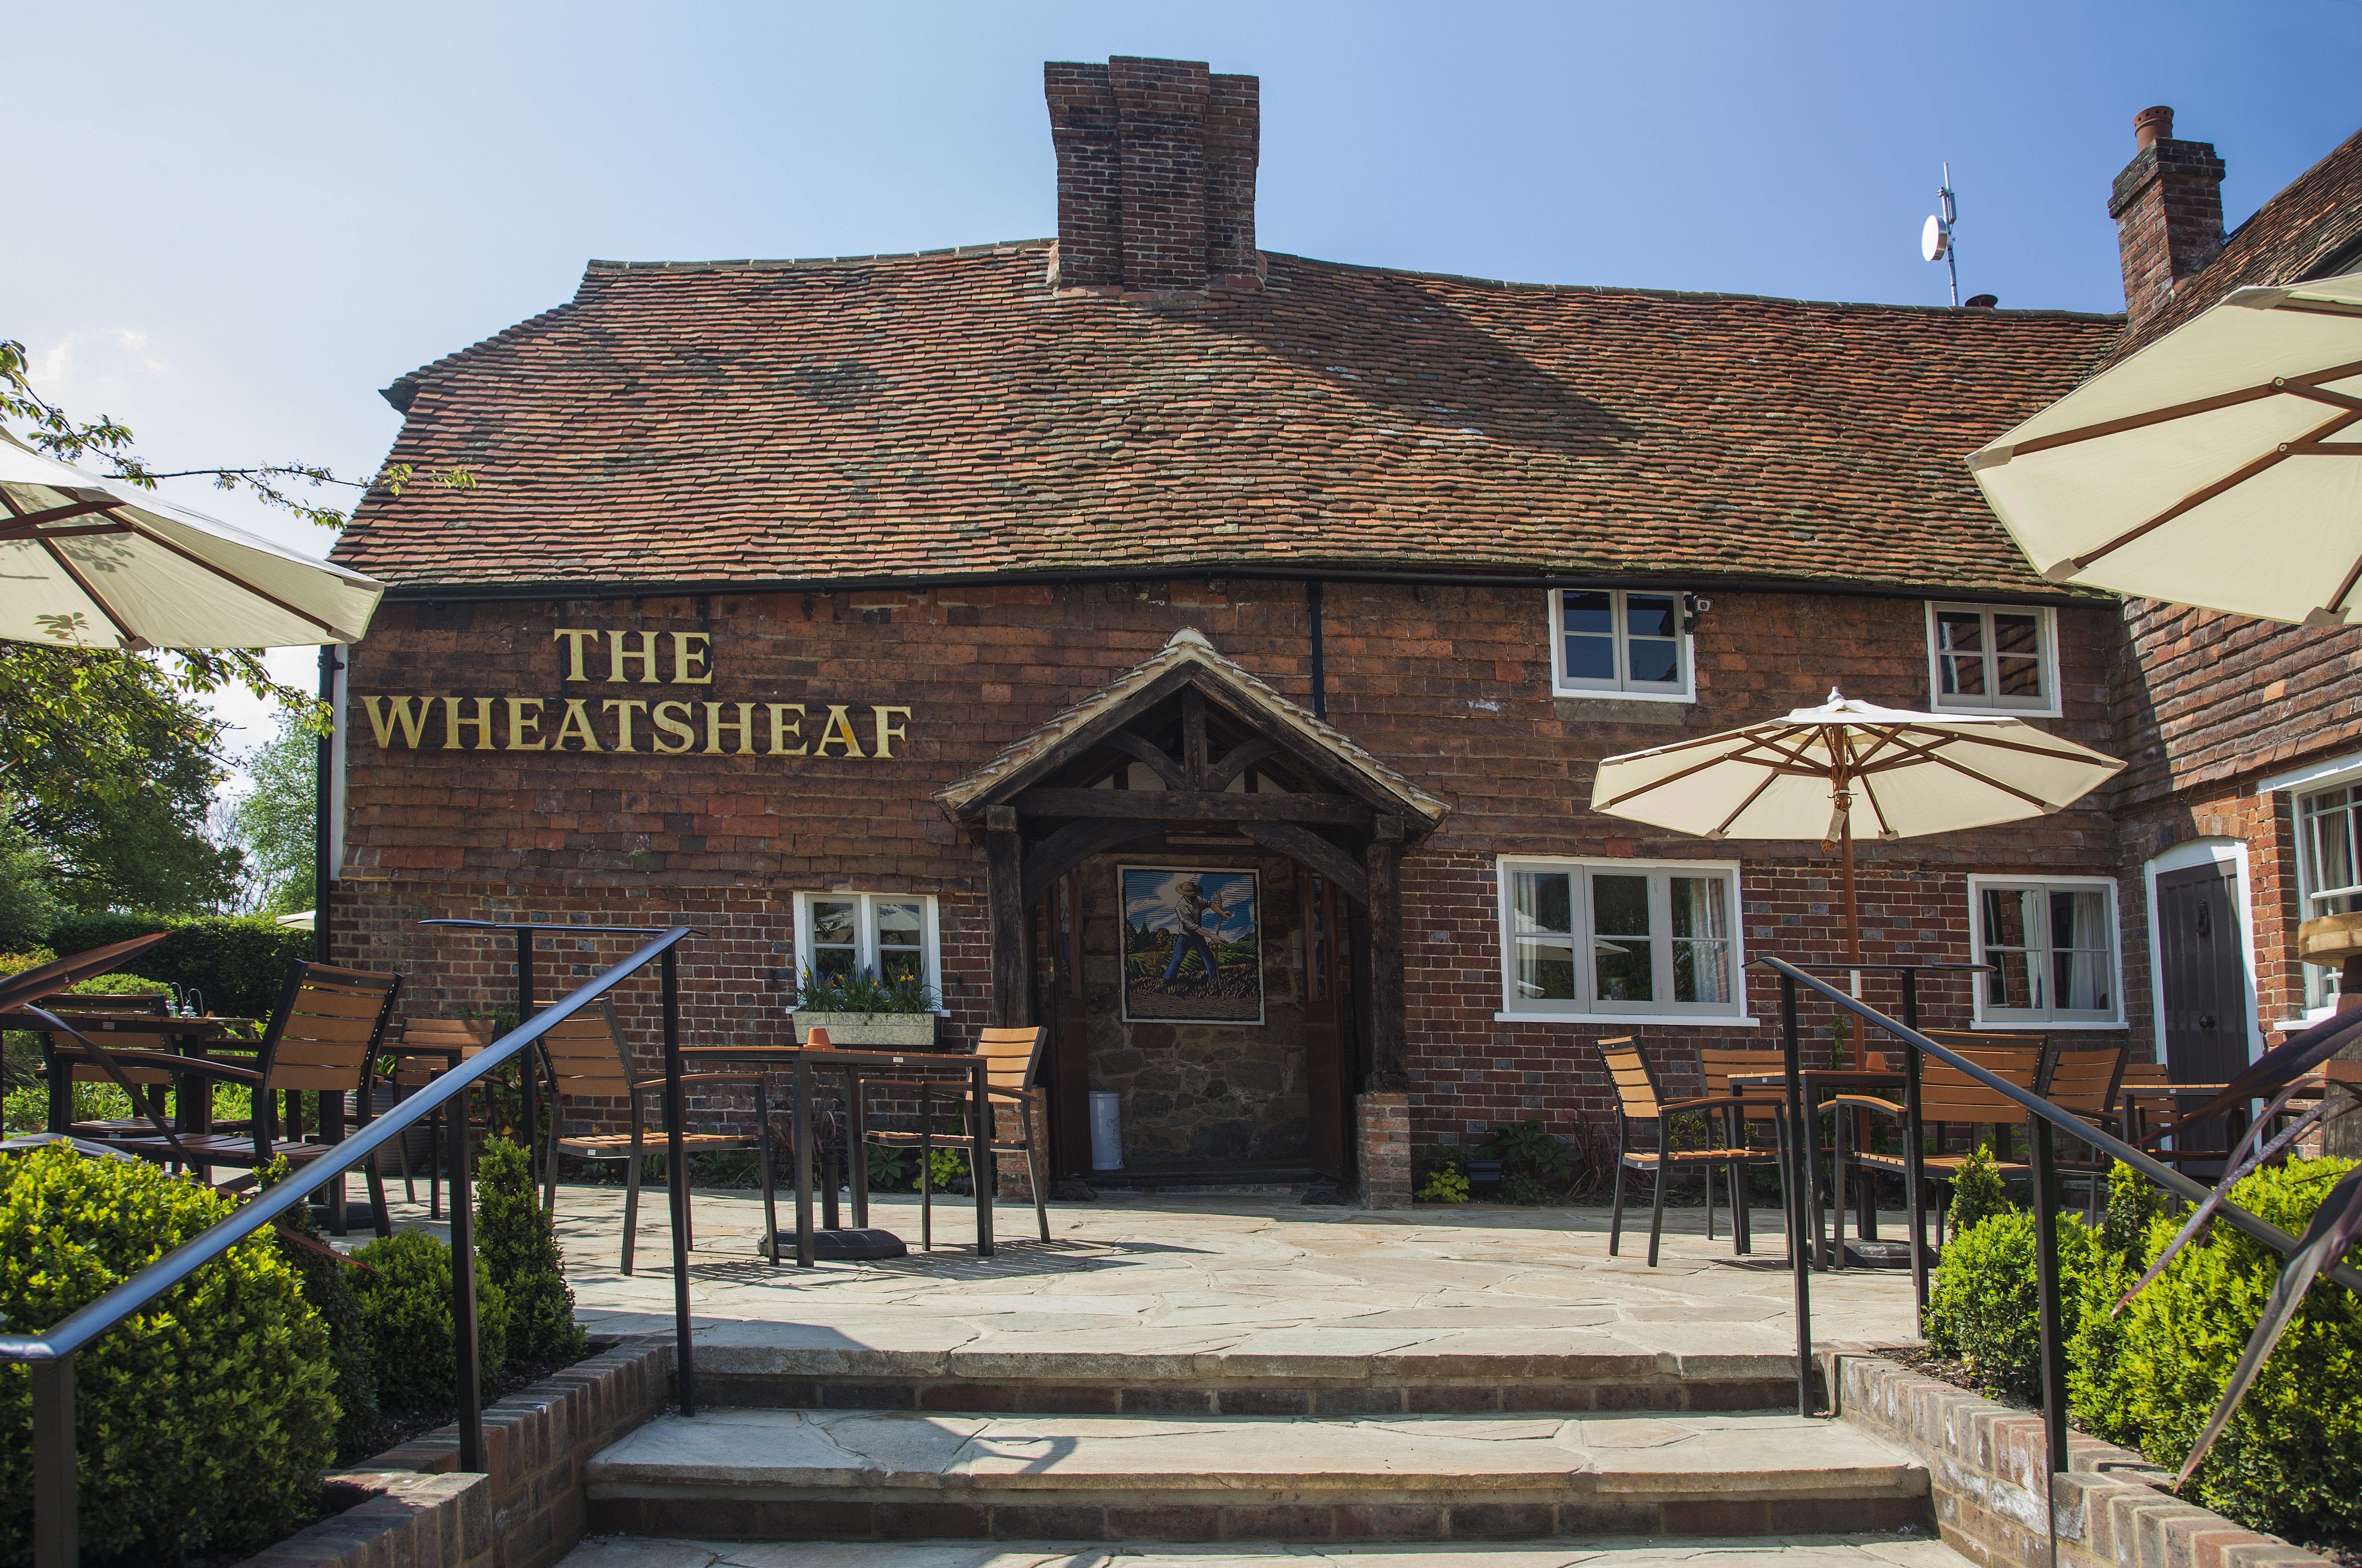 Wheatsheaf at Bough Beech - Kent